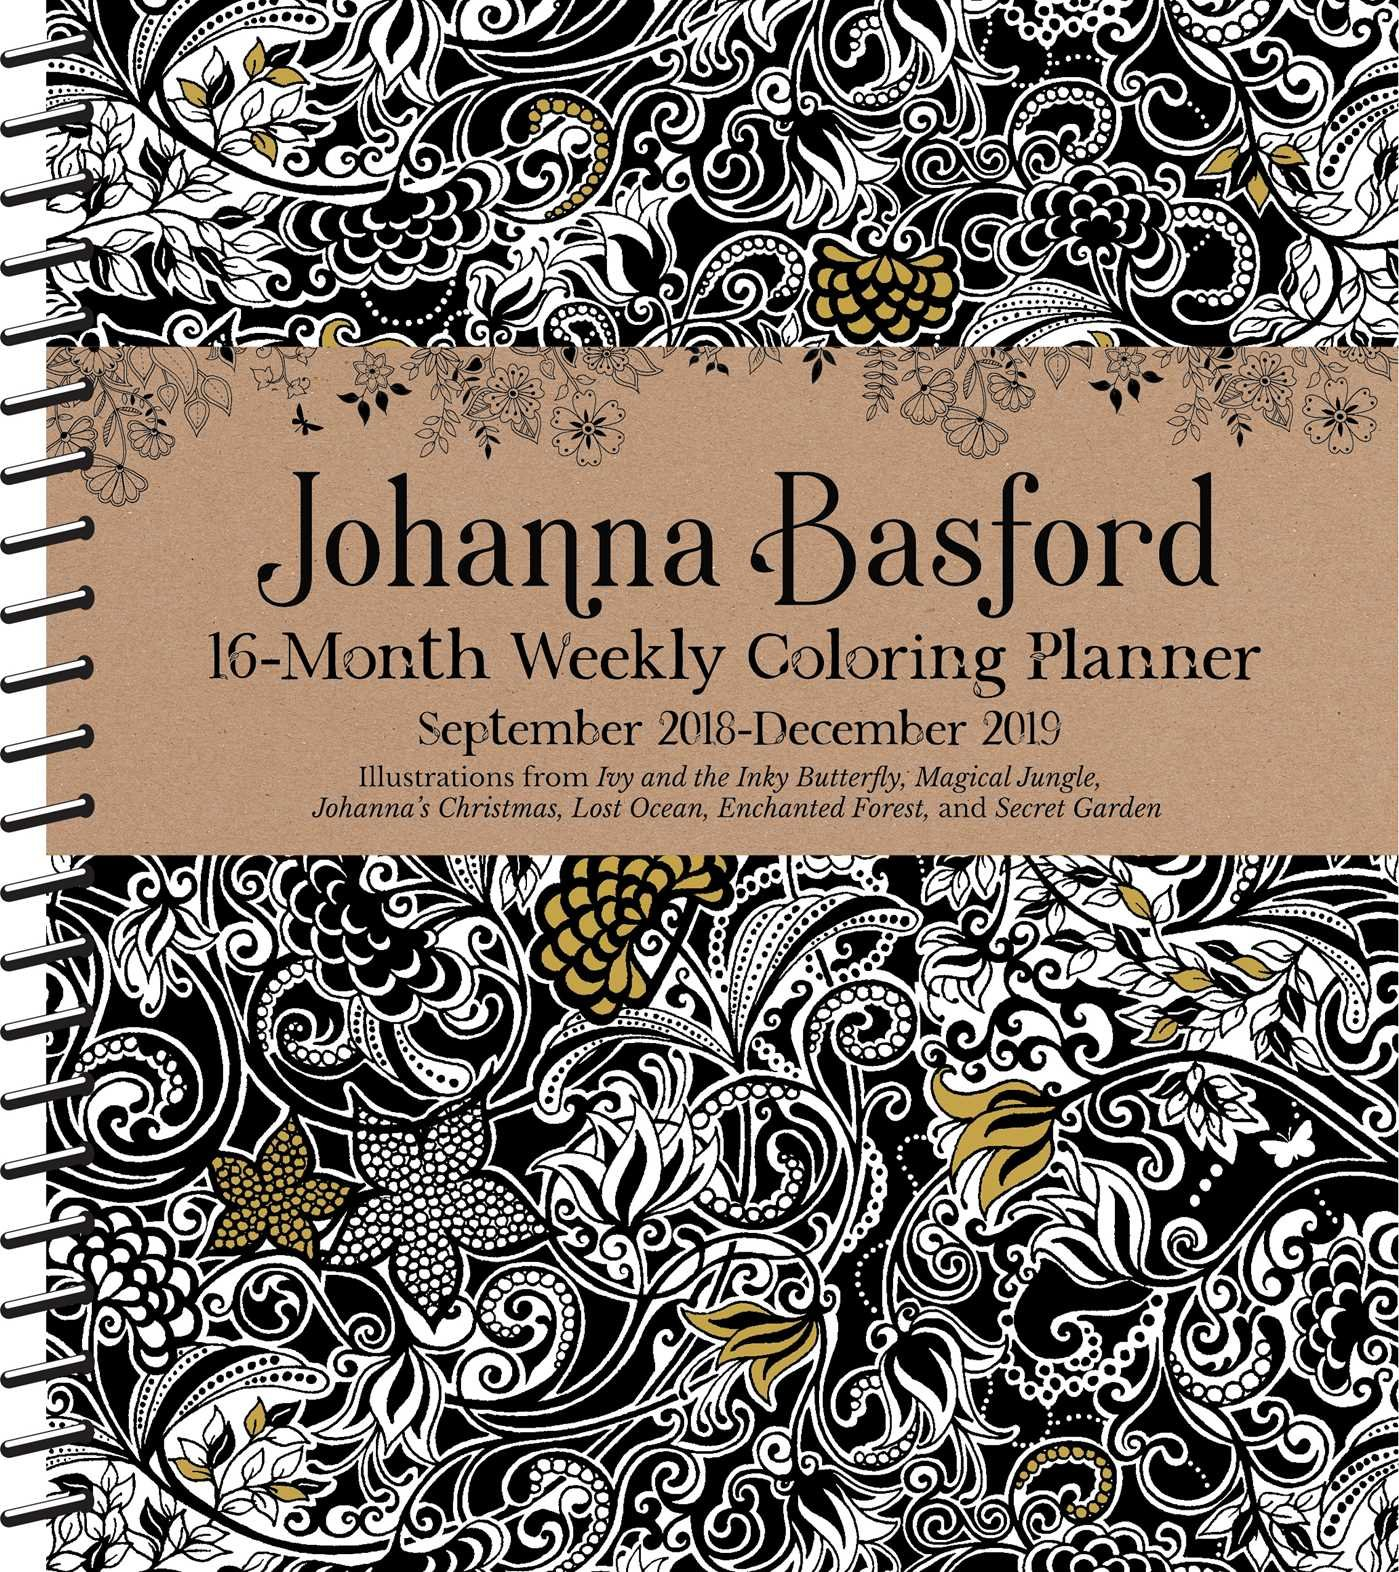 2019 Coloring Wall Calendar With Johanna Basford 2018 16 Month Weekly Planner